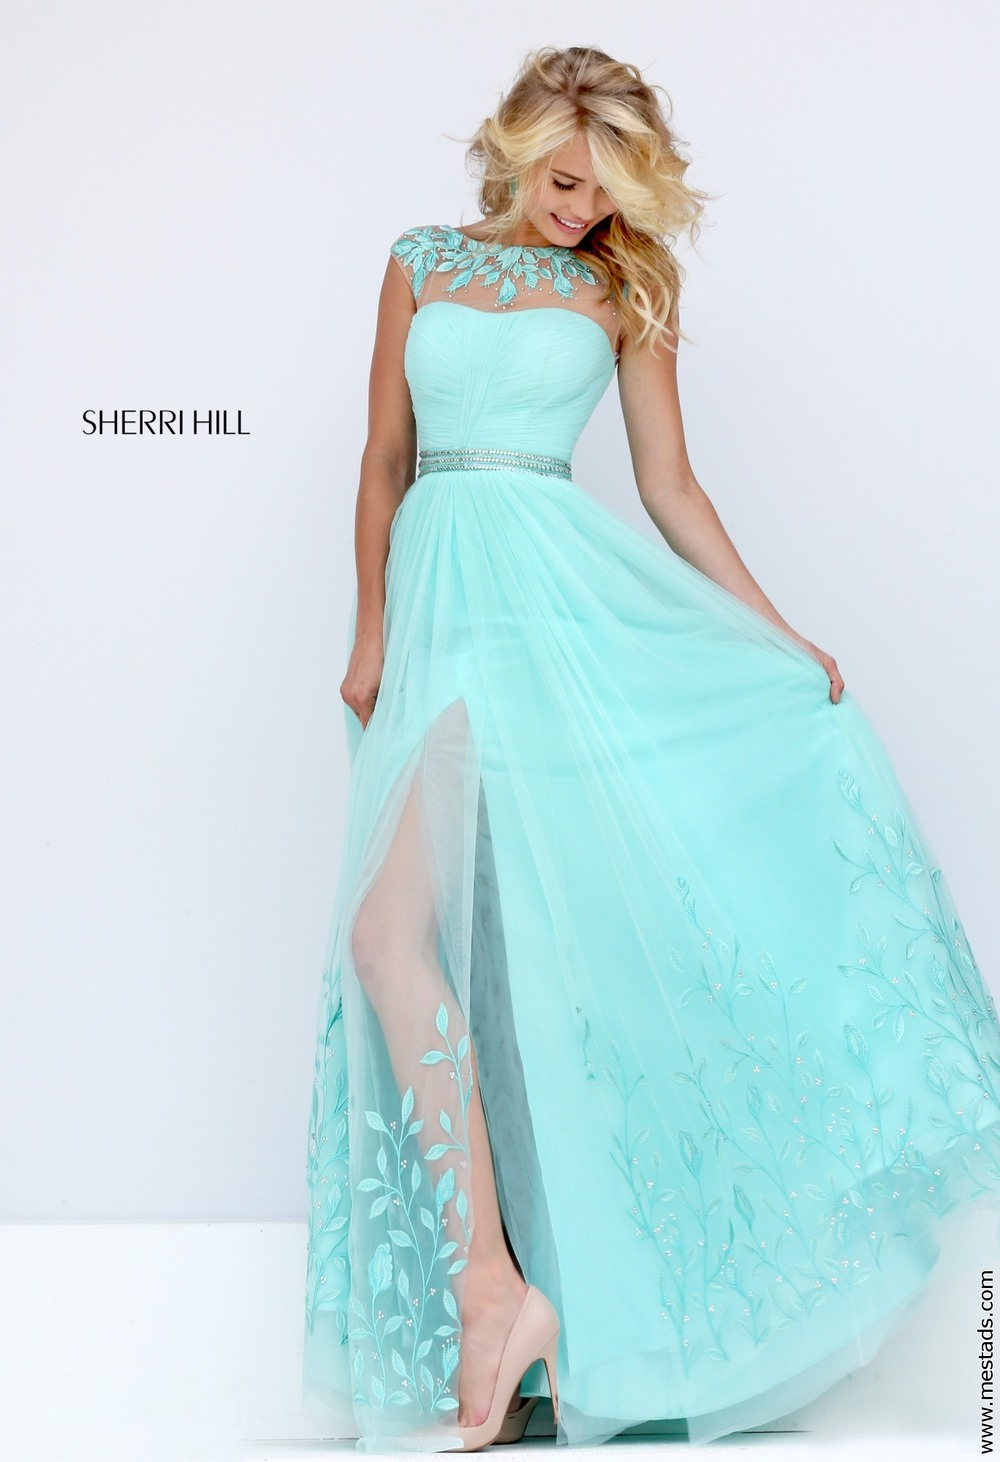 Sherri Hill Gowns for Rent